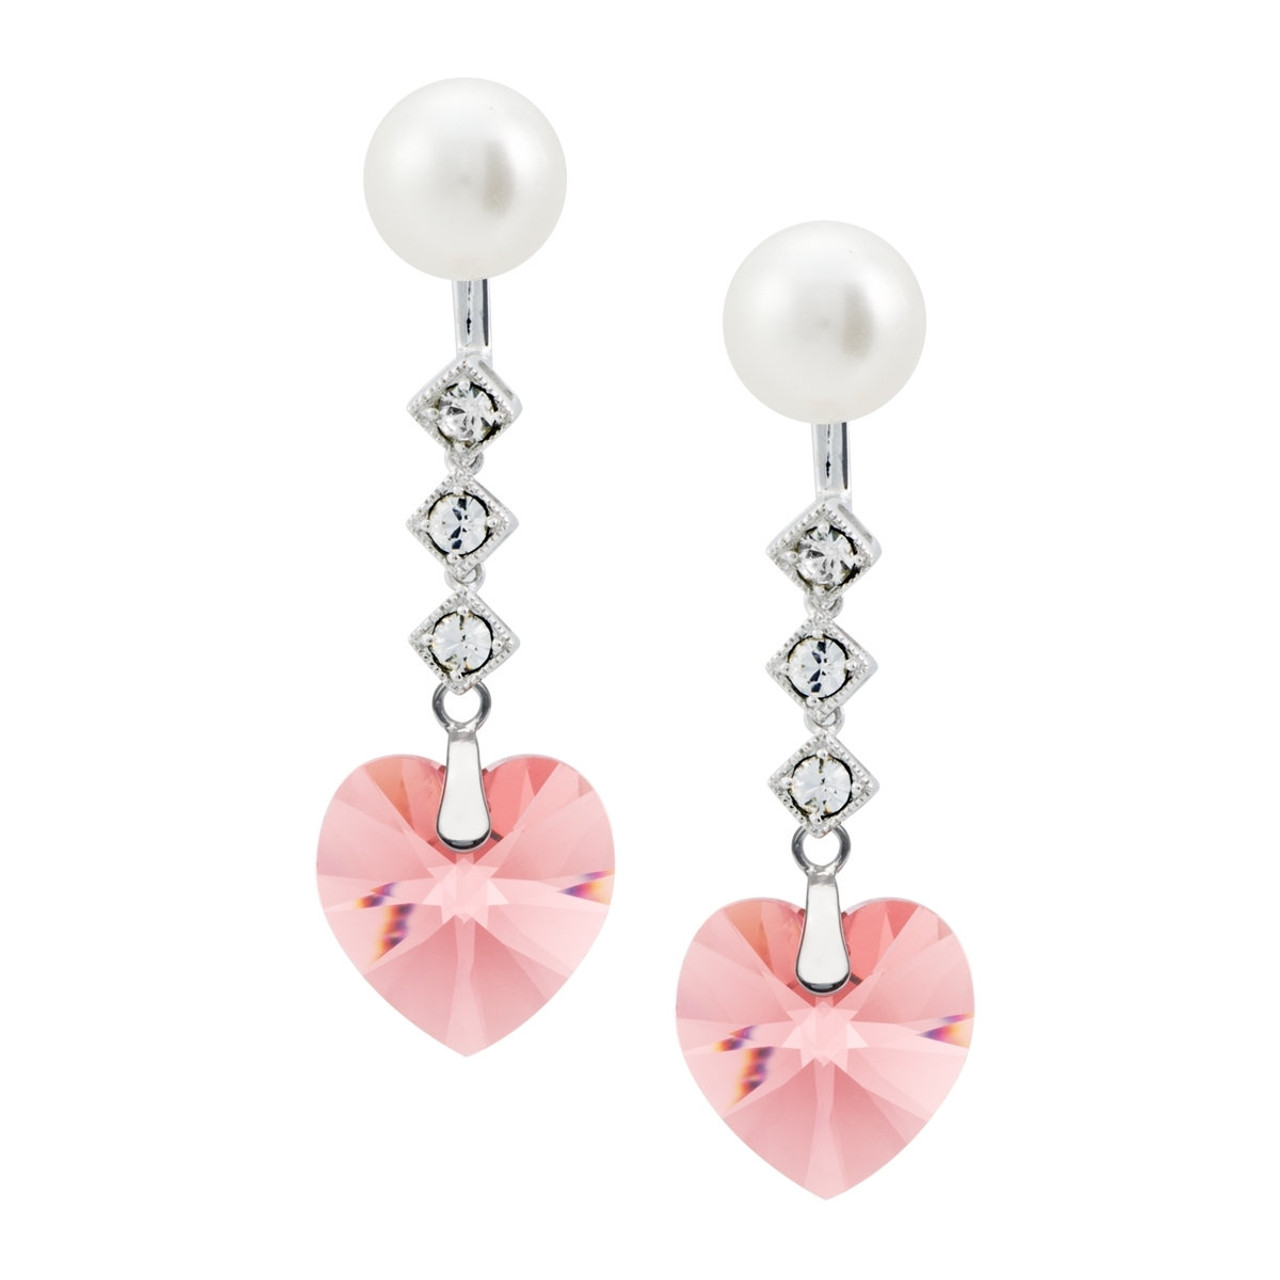 en heart estore pandora uk studs earrings plain